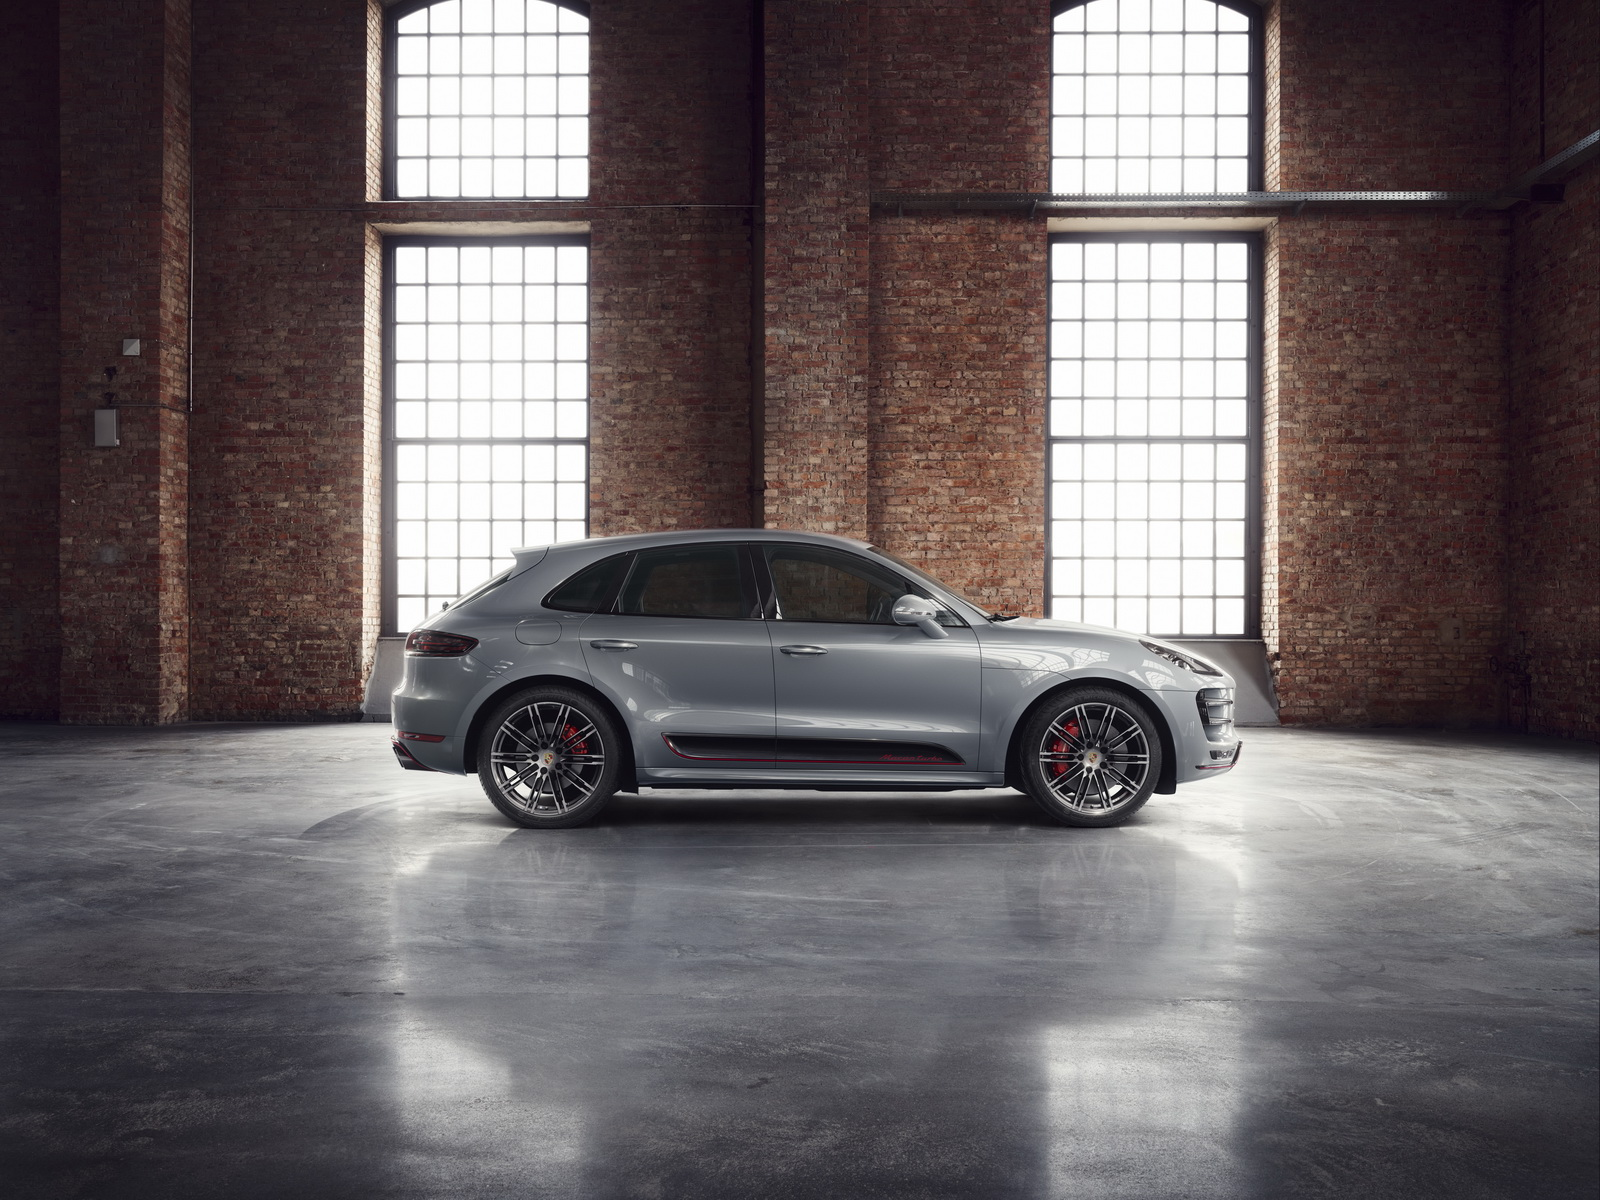 Porsche_Macan_Turbo_Exclusive_Performance_Edition_02